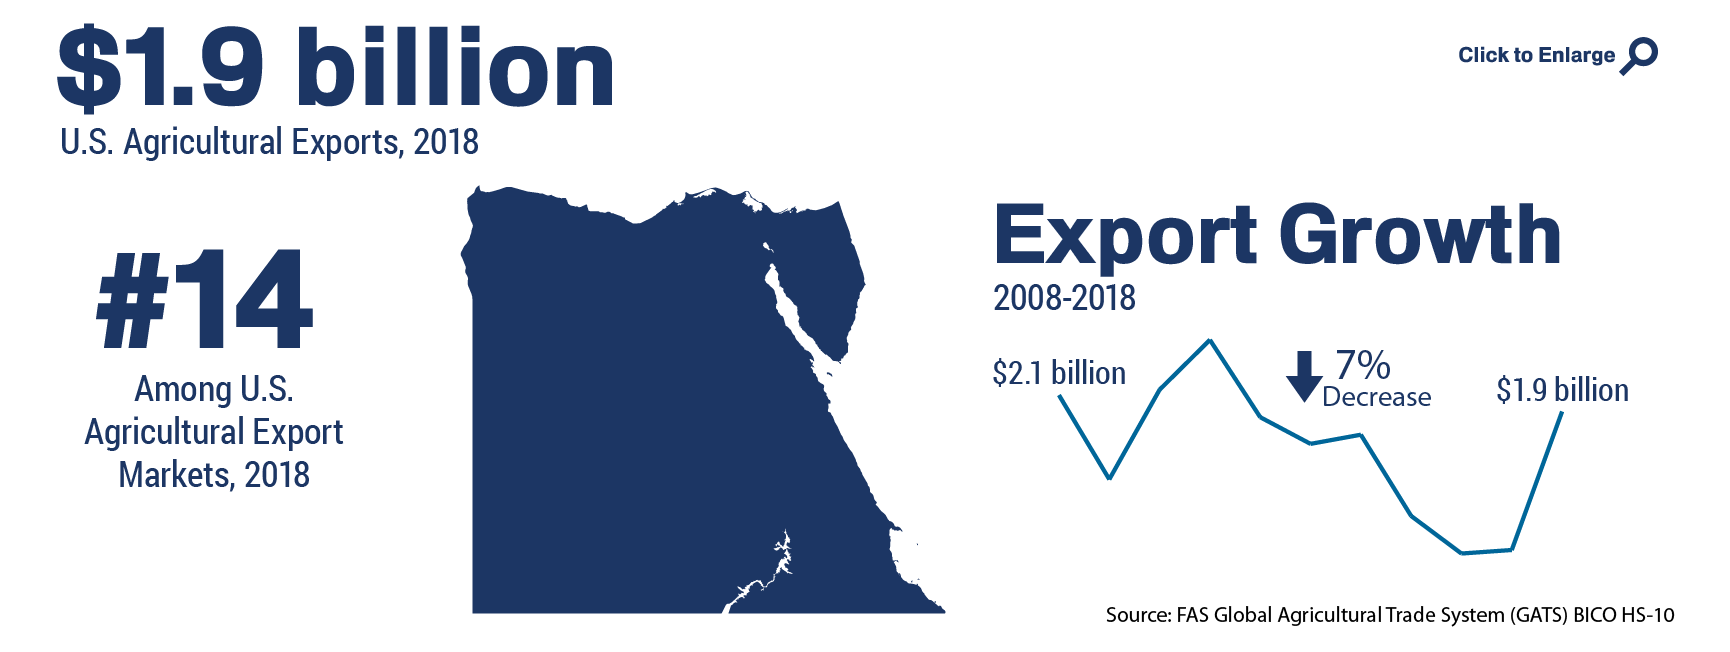 Infographic showing the ranking and total of U.S. agricultural trade to Egypt in 2018